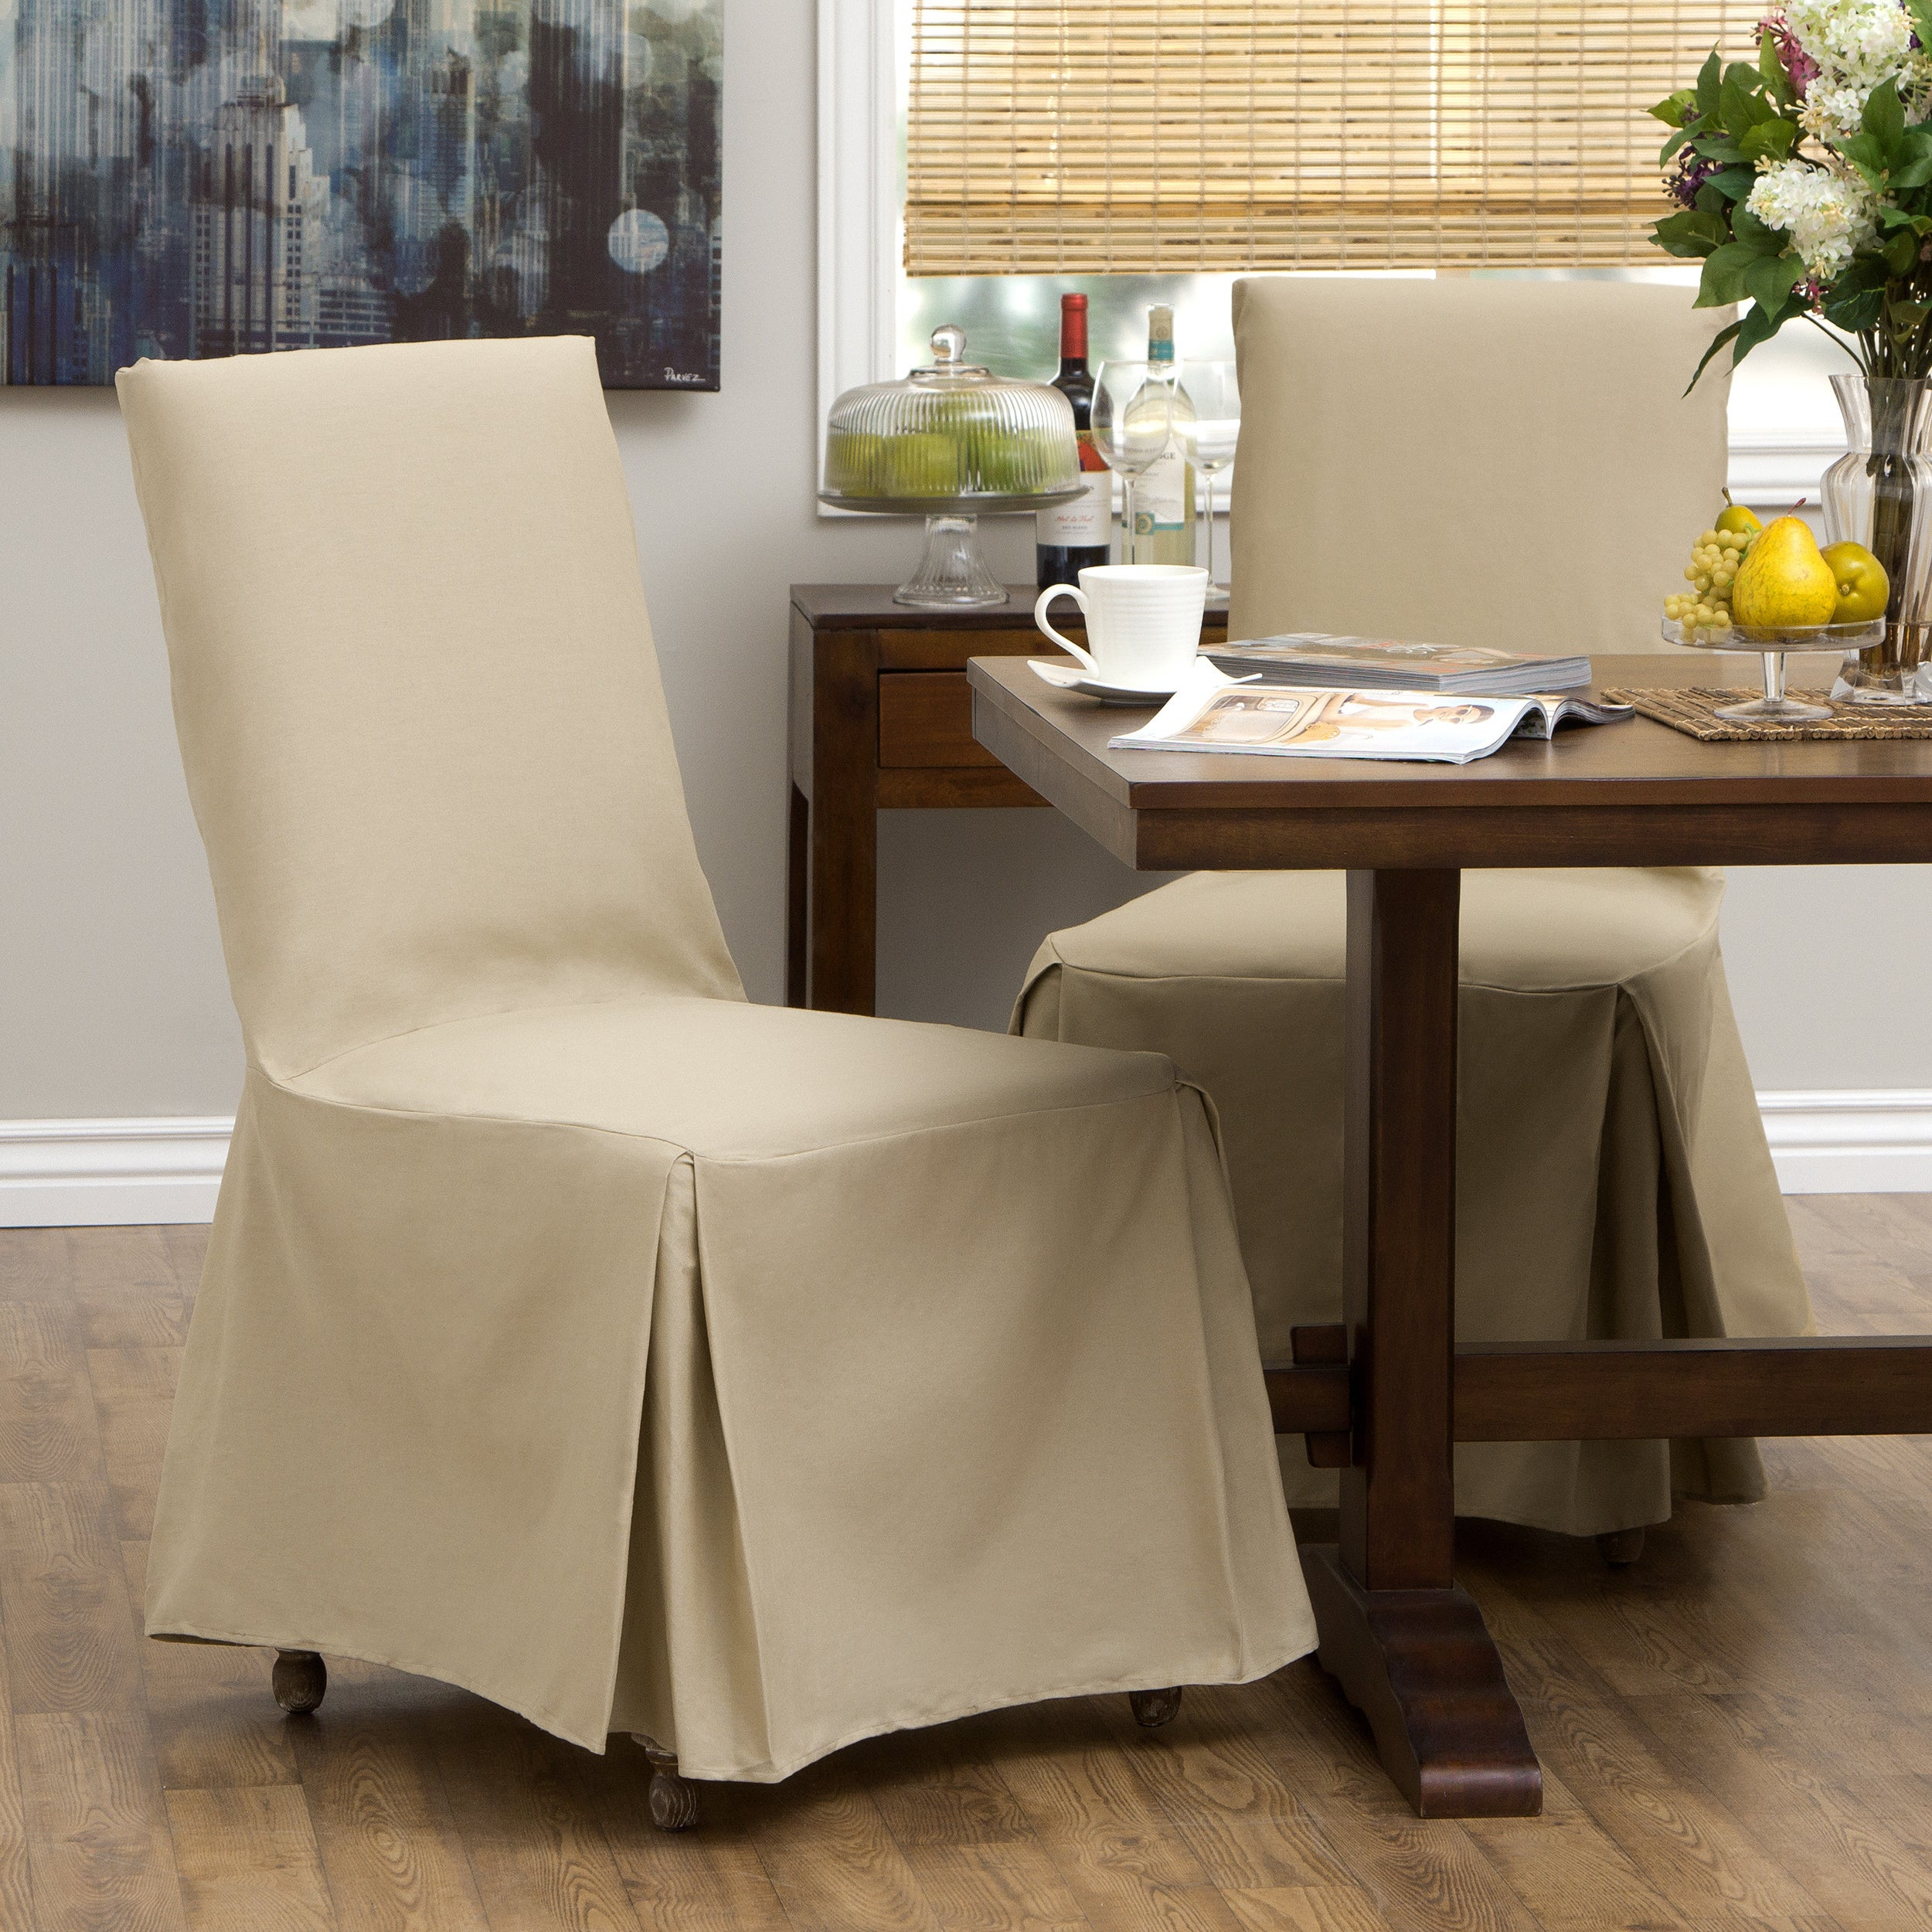 Cotton Duck Parsons Chair Slipcover Pair - Overstock Shopping - Big ...